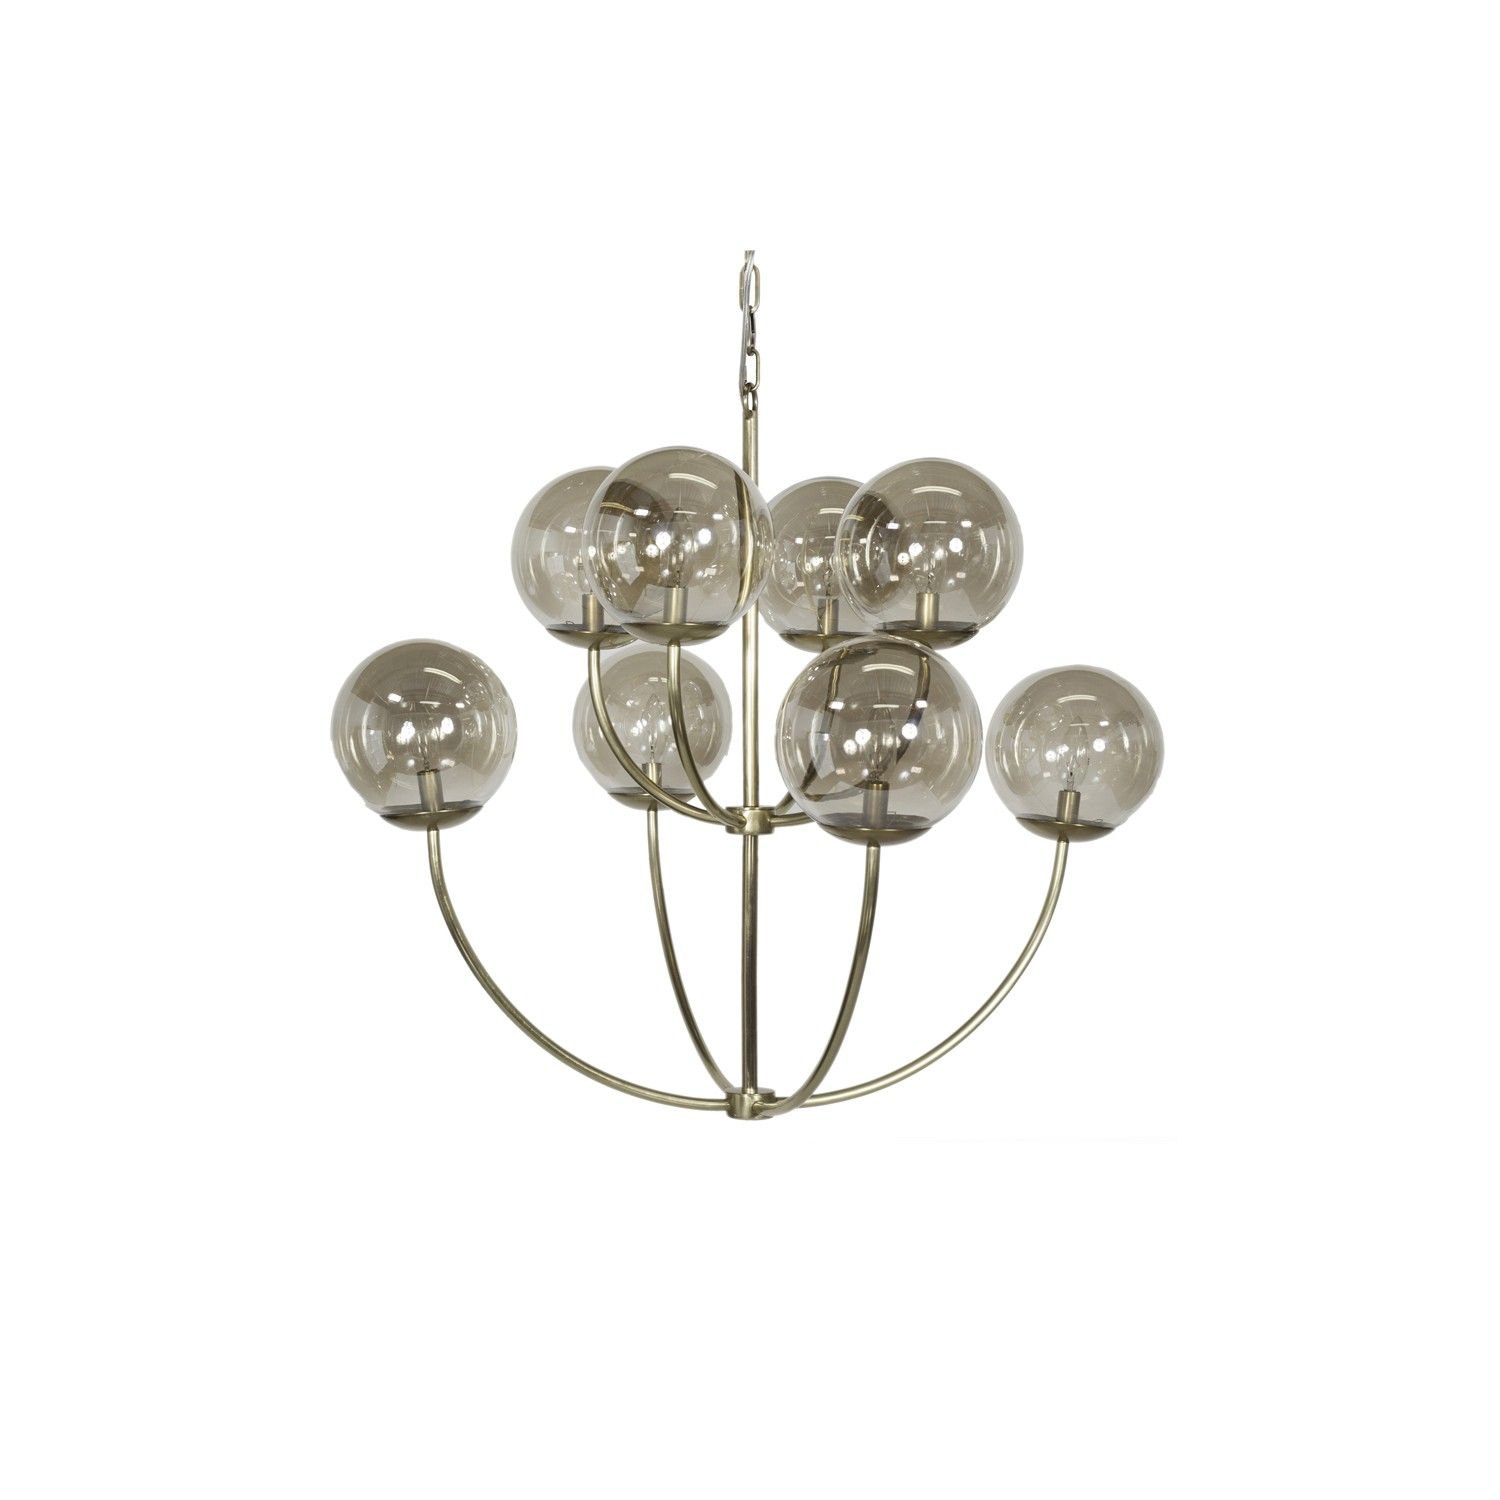 8 Arm Two Tier Chandelier with Clear Globes - Antique Brass or Nickel Option